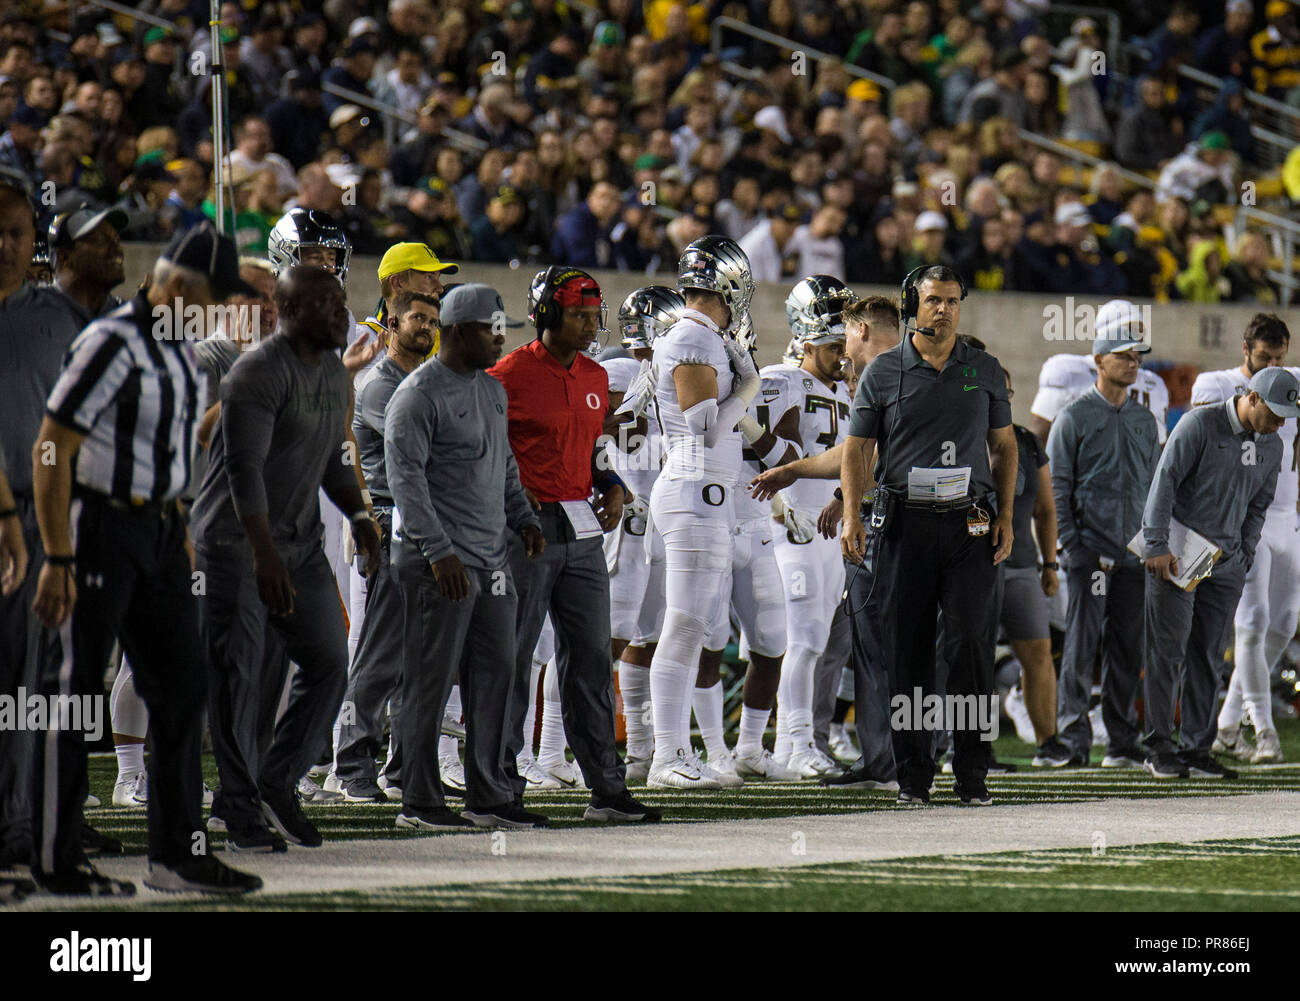 CA U.S.A. Oregon head coach Mario Cristobal on the sideline during the NCAA  Football game between Oregon Ducks and the California Golden Bears 42-24  win at ... 5ffe8f307